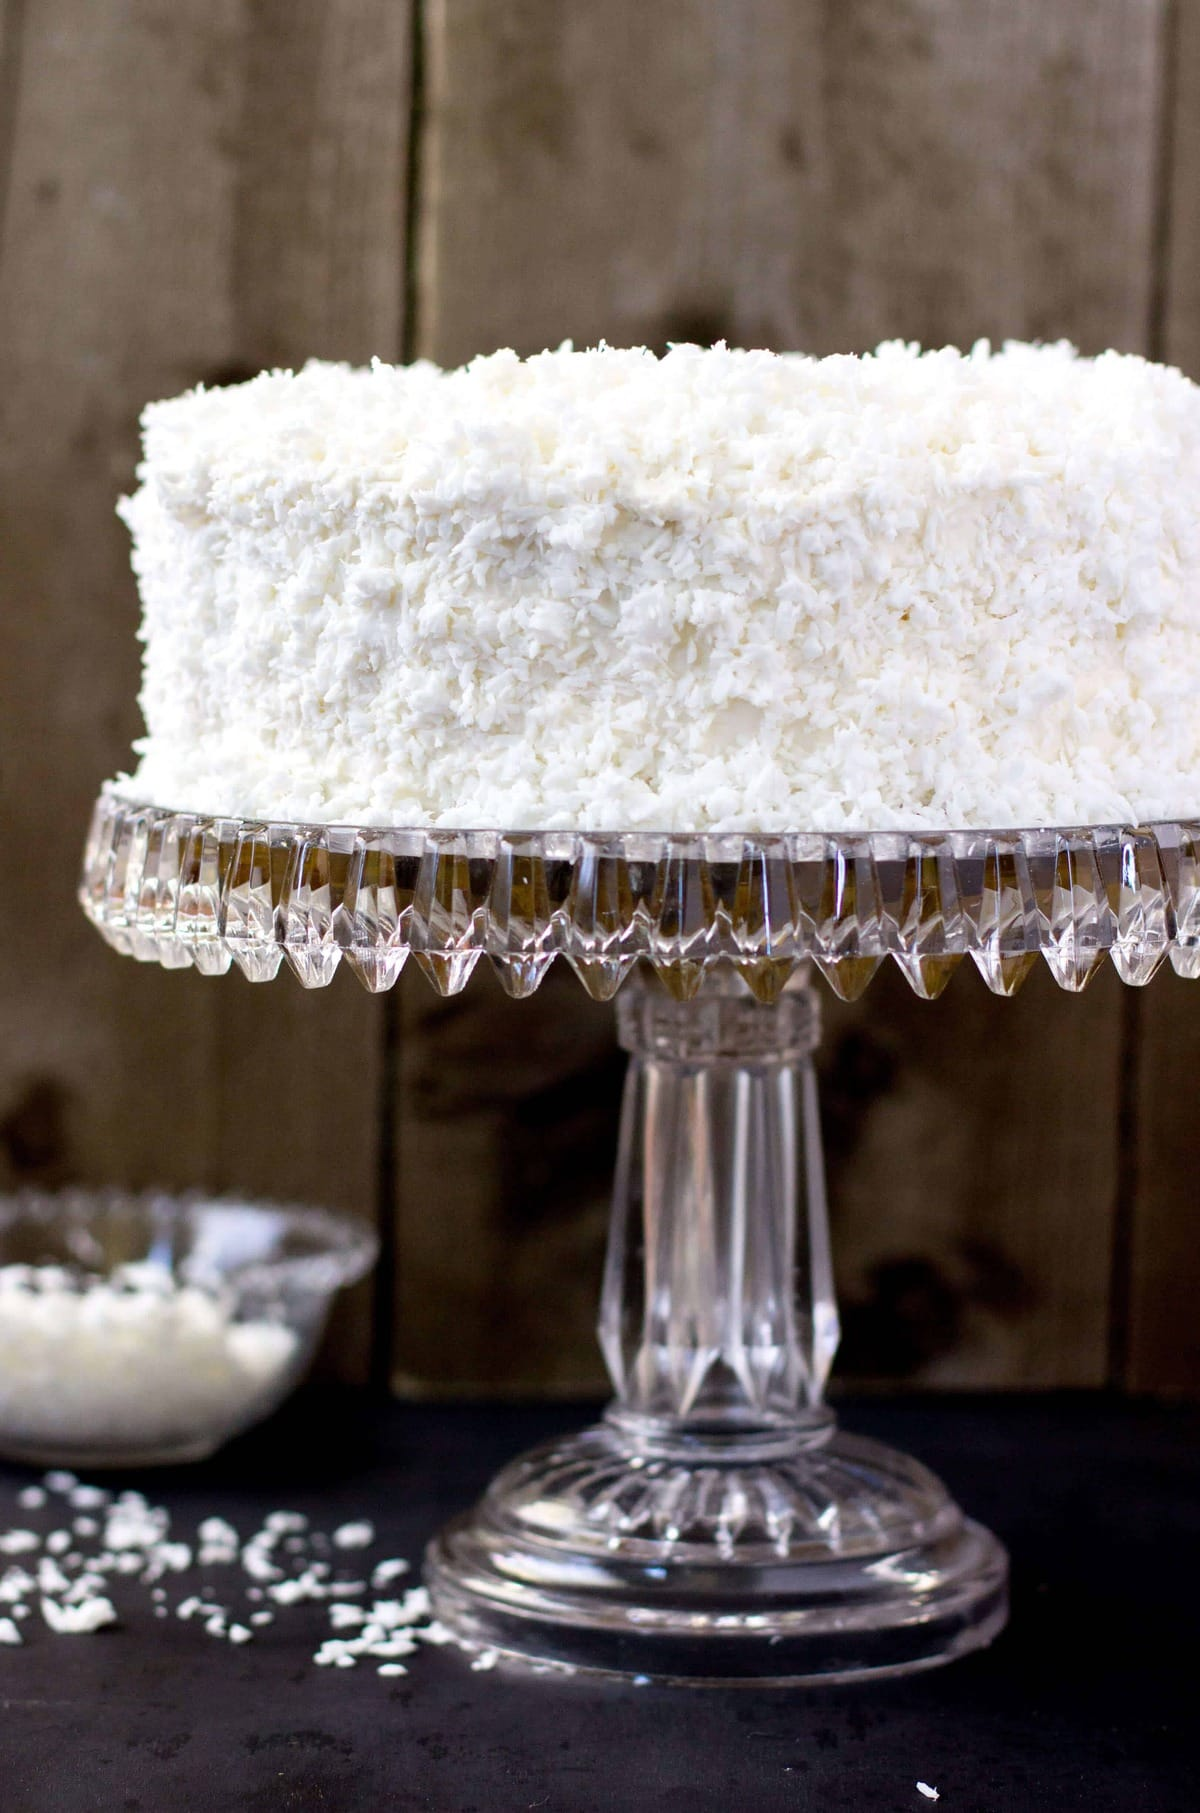 Frosted coconut cake on crystal cake stand